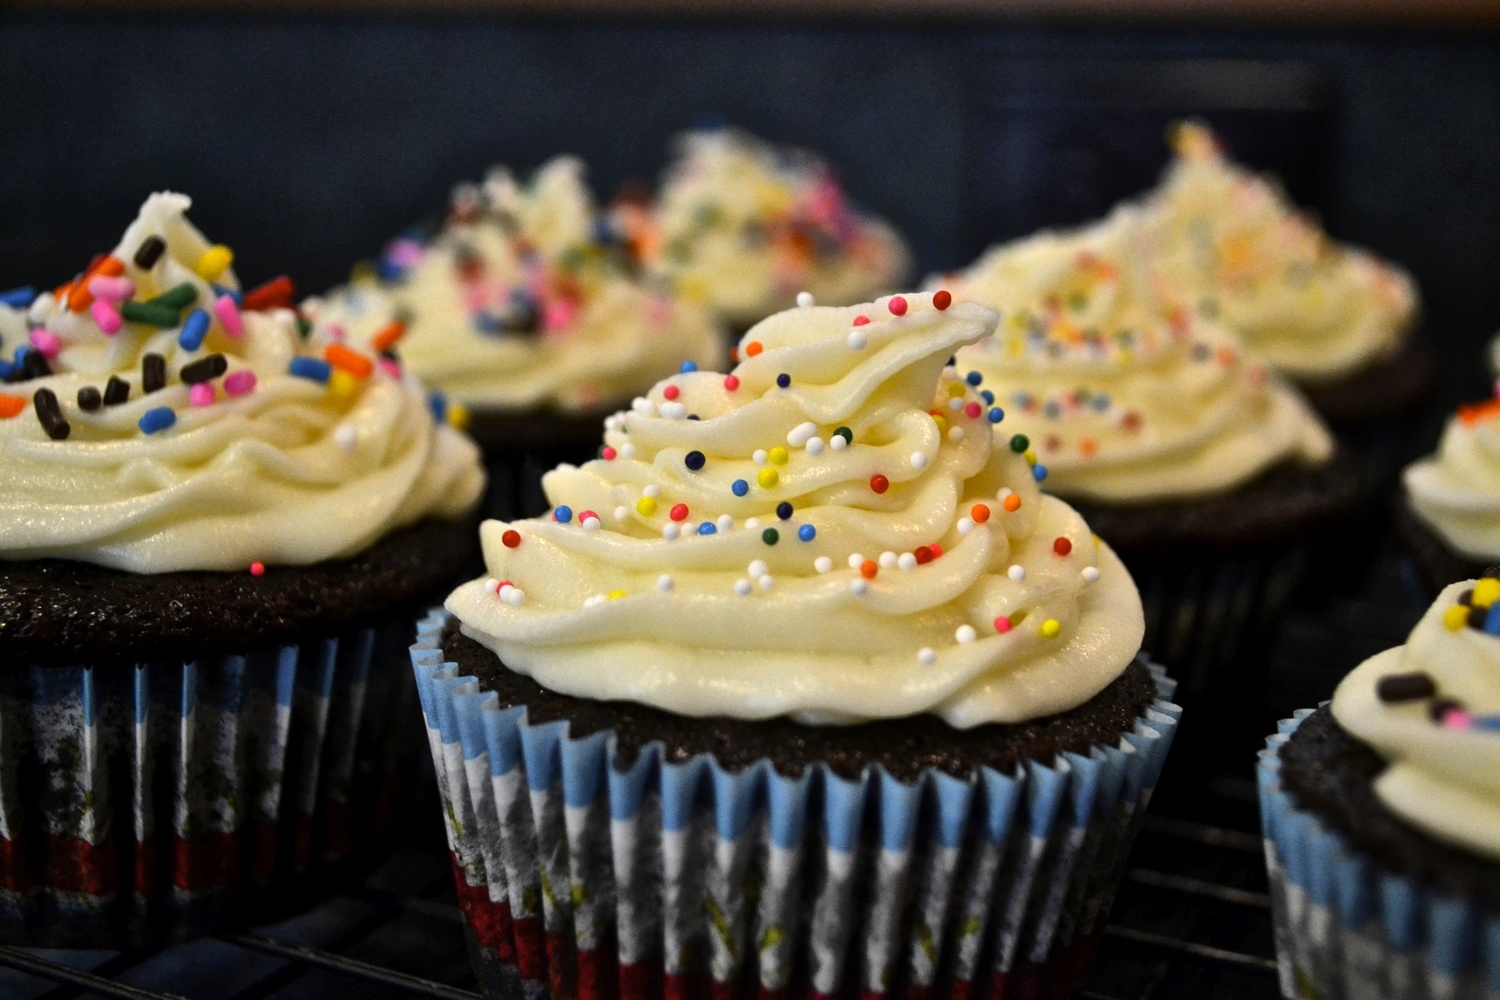 {Chocolate cupcakes with cream cheese frosting}